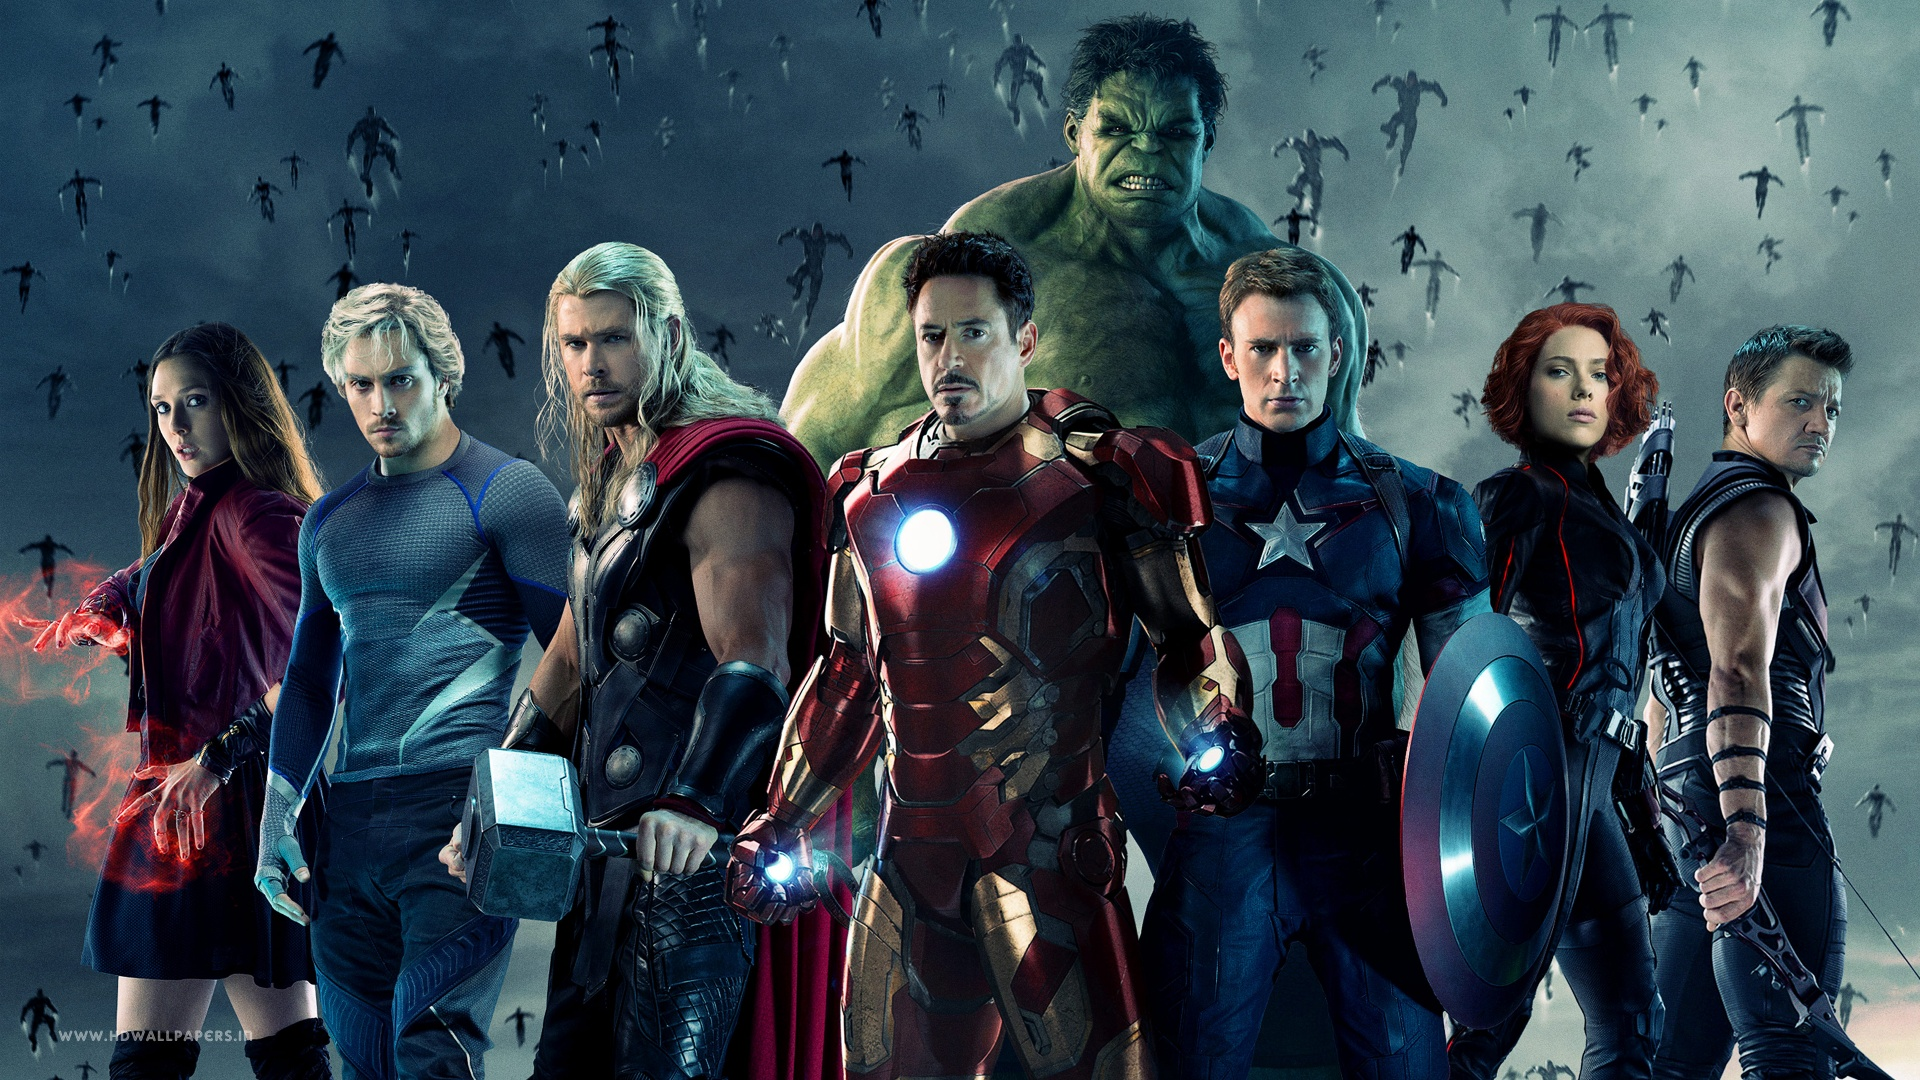 Avengers Age of Ultron 2015 Movie Wallpapers HD Wallpapers 1920x1080